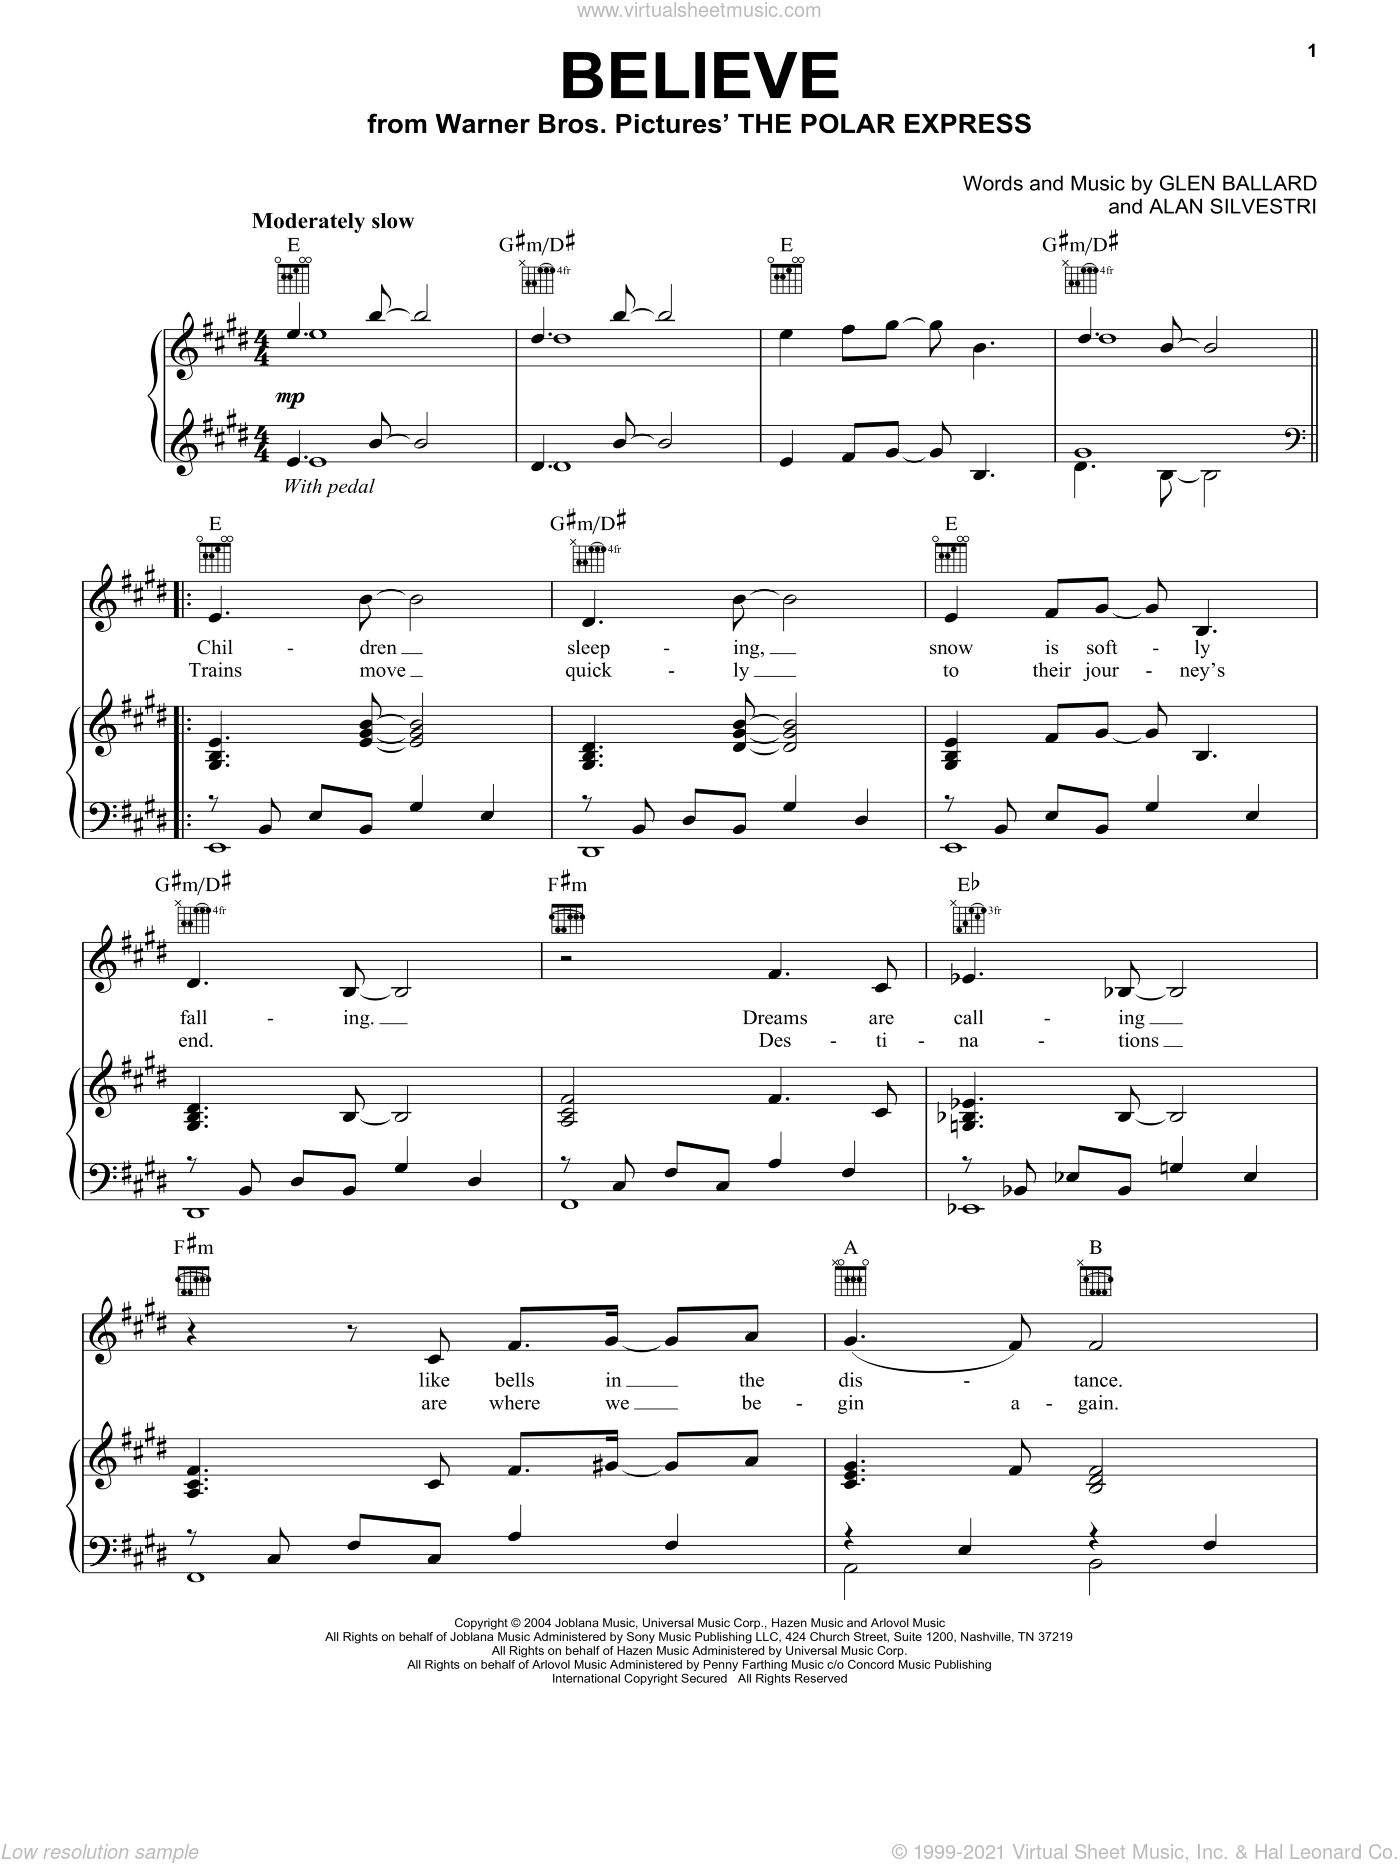 Believe sheet music for voice, piano or guitar by Josh Groban, Alan Silvestri and Glen Ballard, Christmas carol score, intermediate voice, piano or guitar. Score Image Preview.